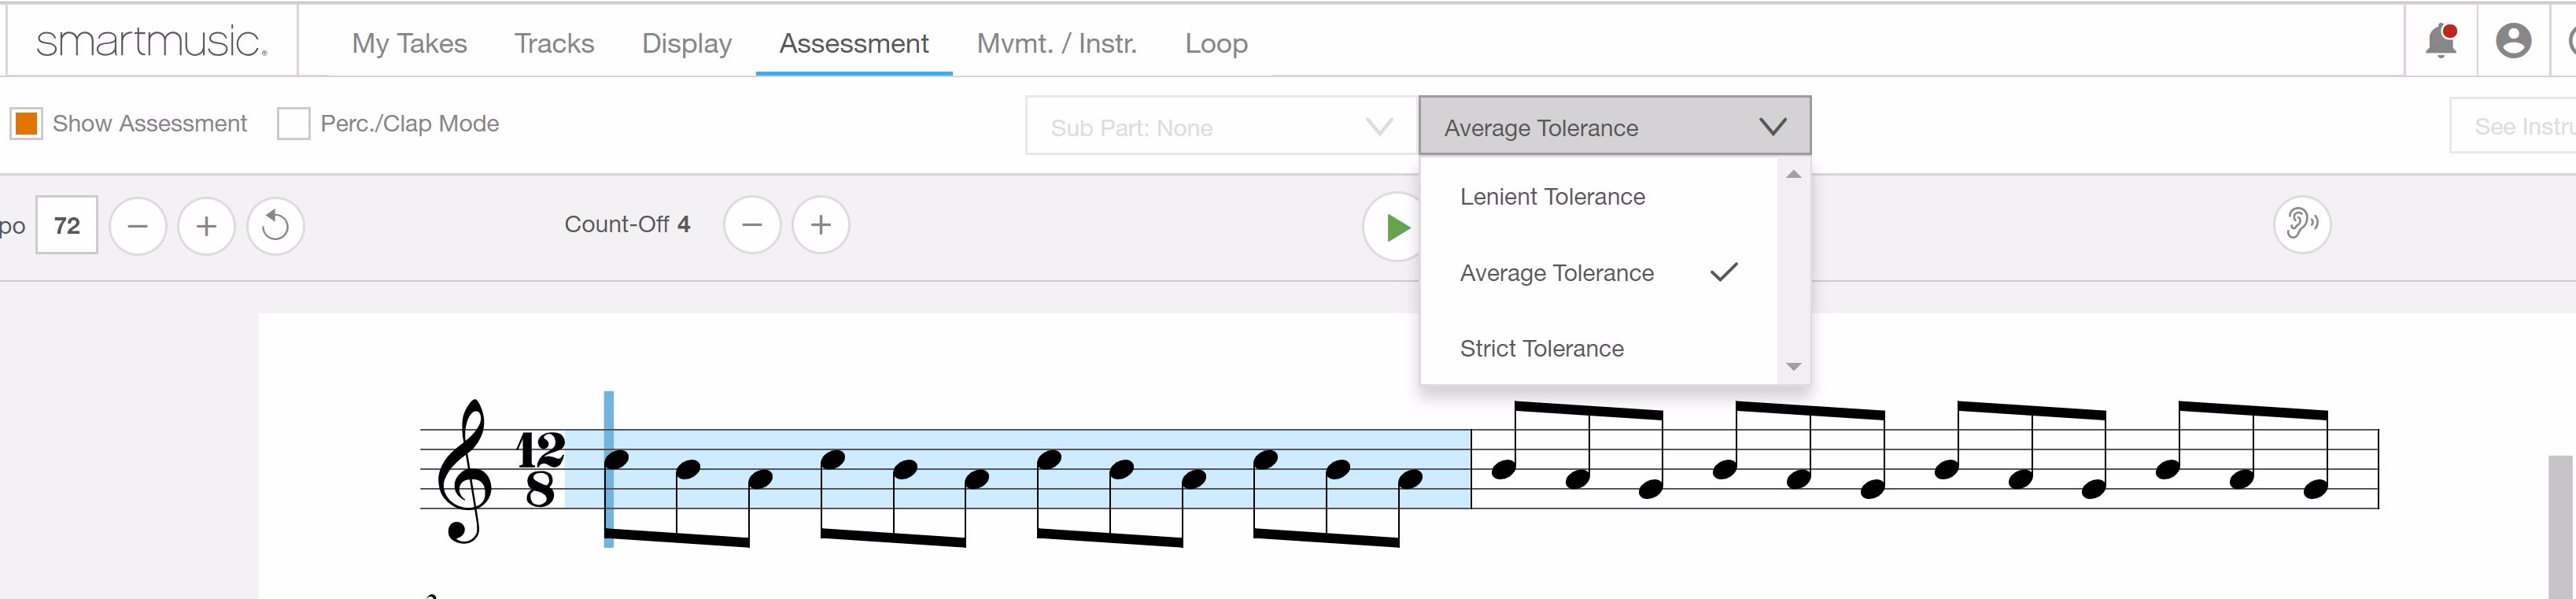 New: Three Levels of Assessment Tolerance in SmartMusic 2